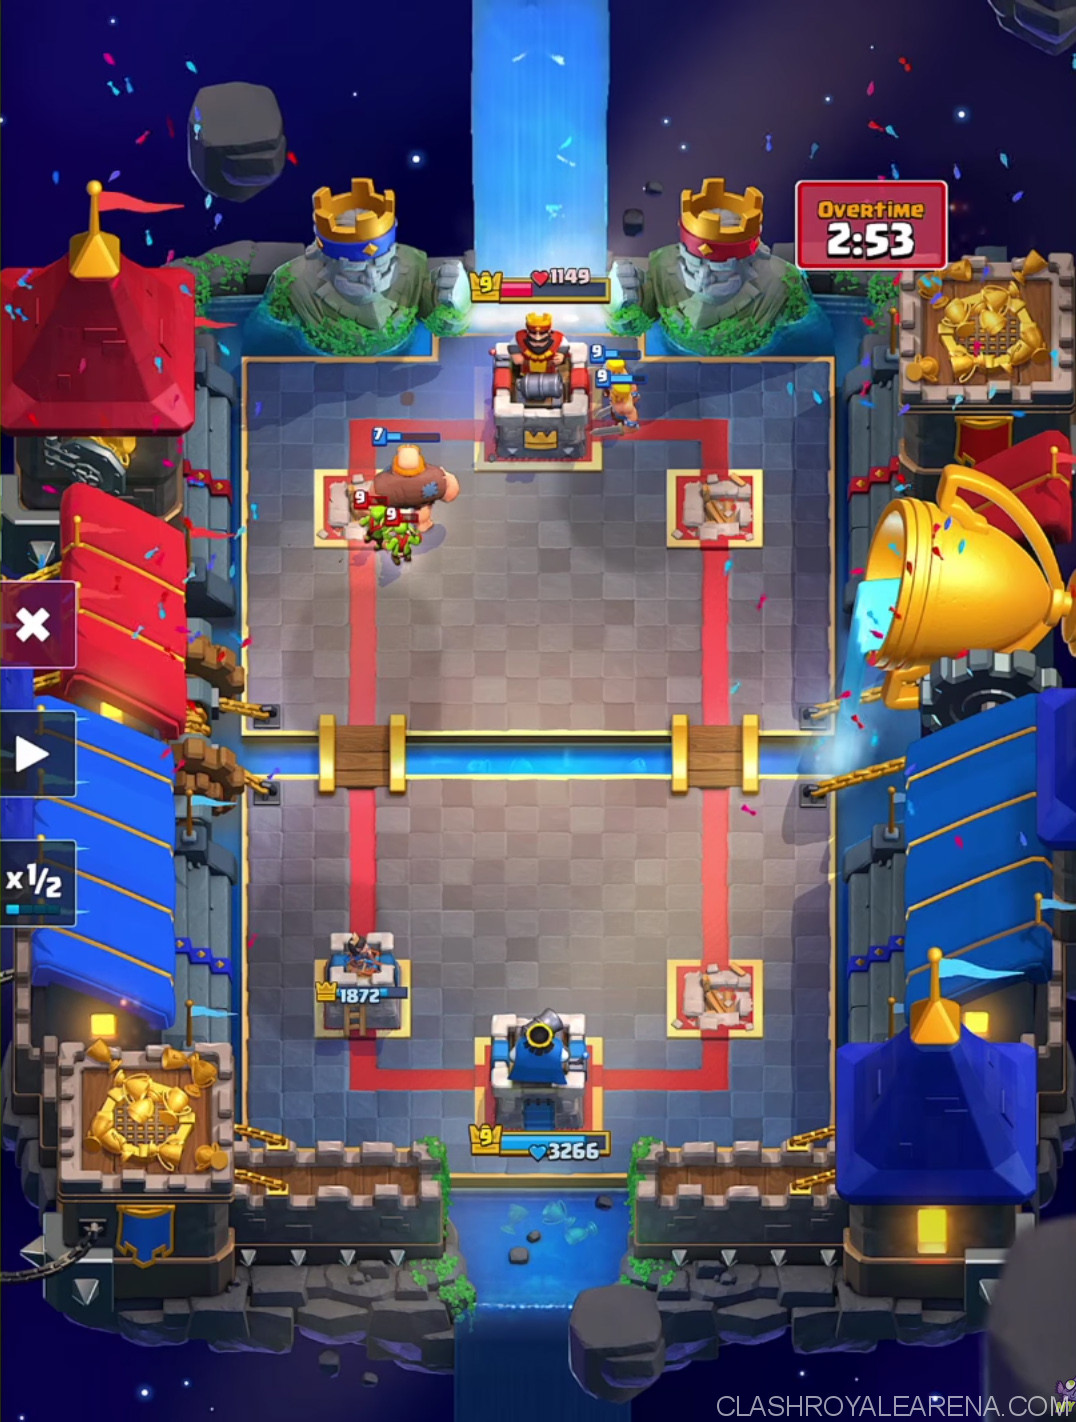 Clash Royale Arena 11 Battle